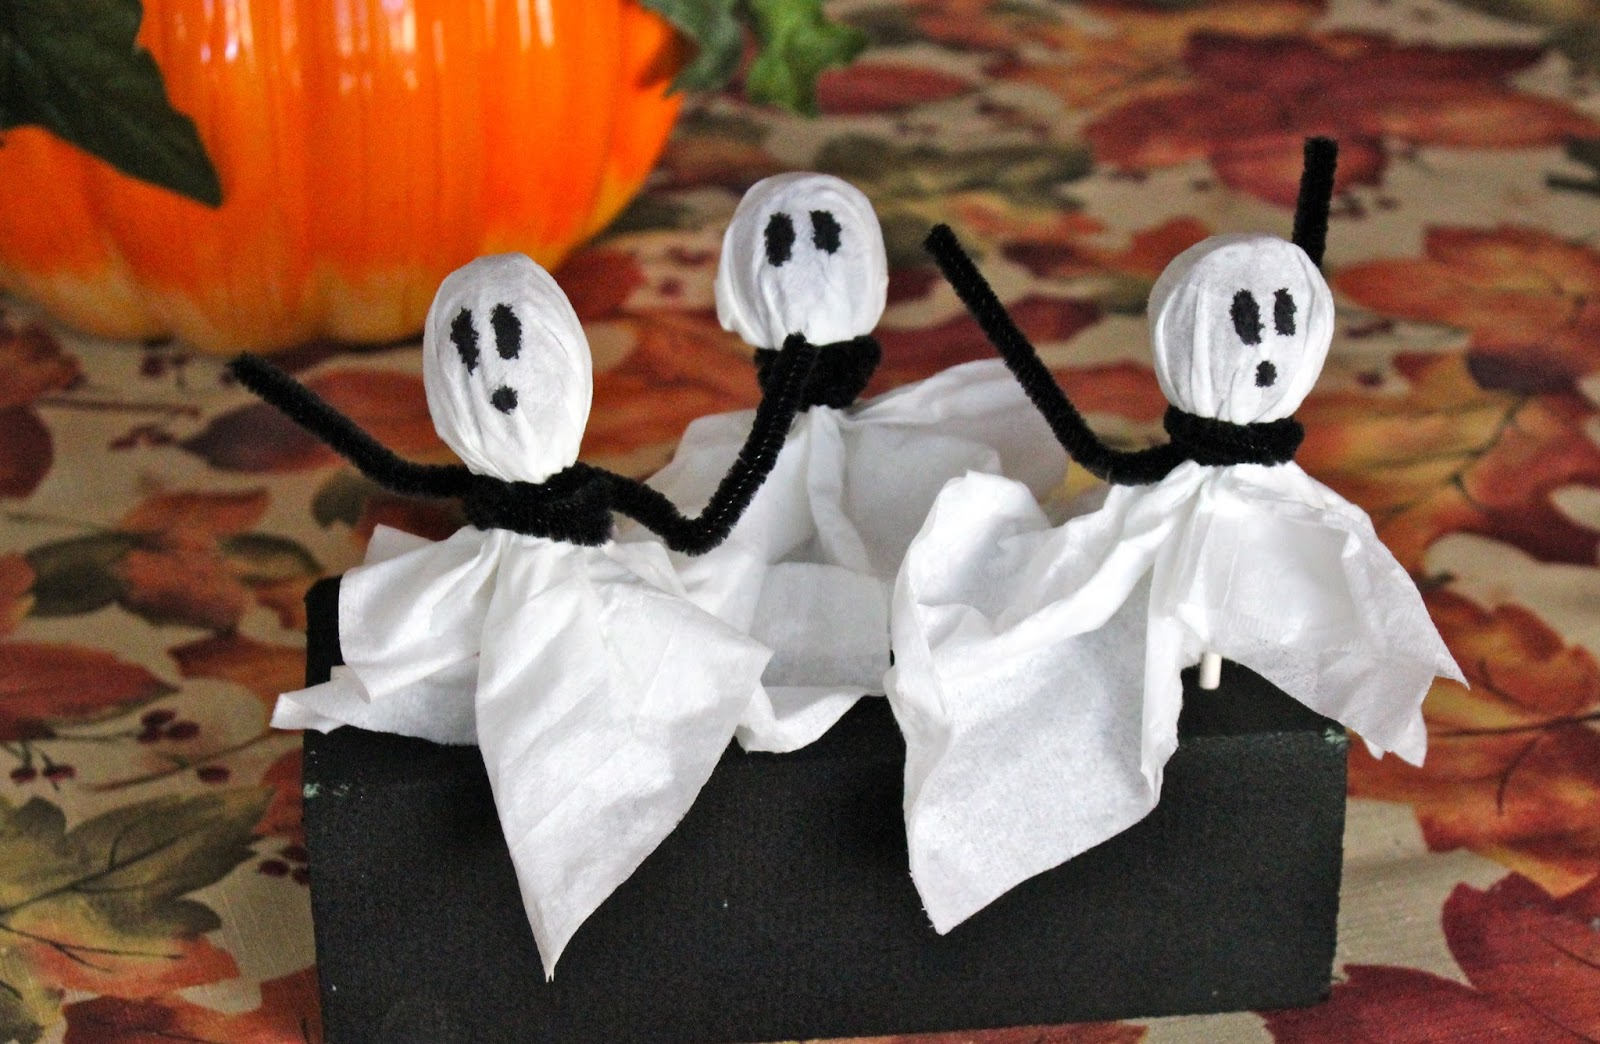 Kid Friendly Halloween Snacks and Crafts: includes Mummy Dogs, Ghost Pops and Shrieking Pretzels